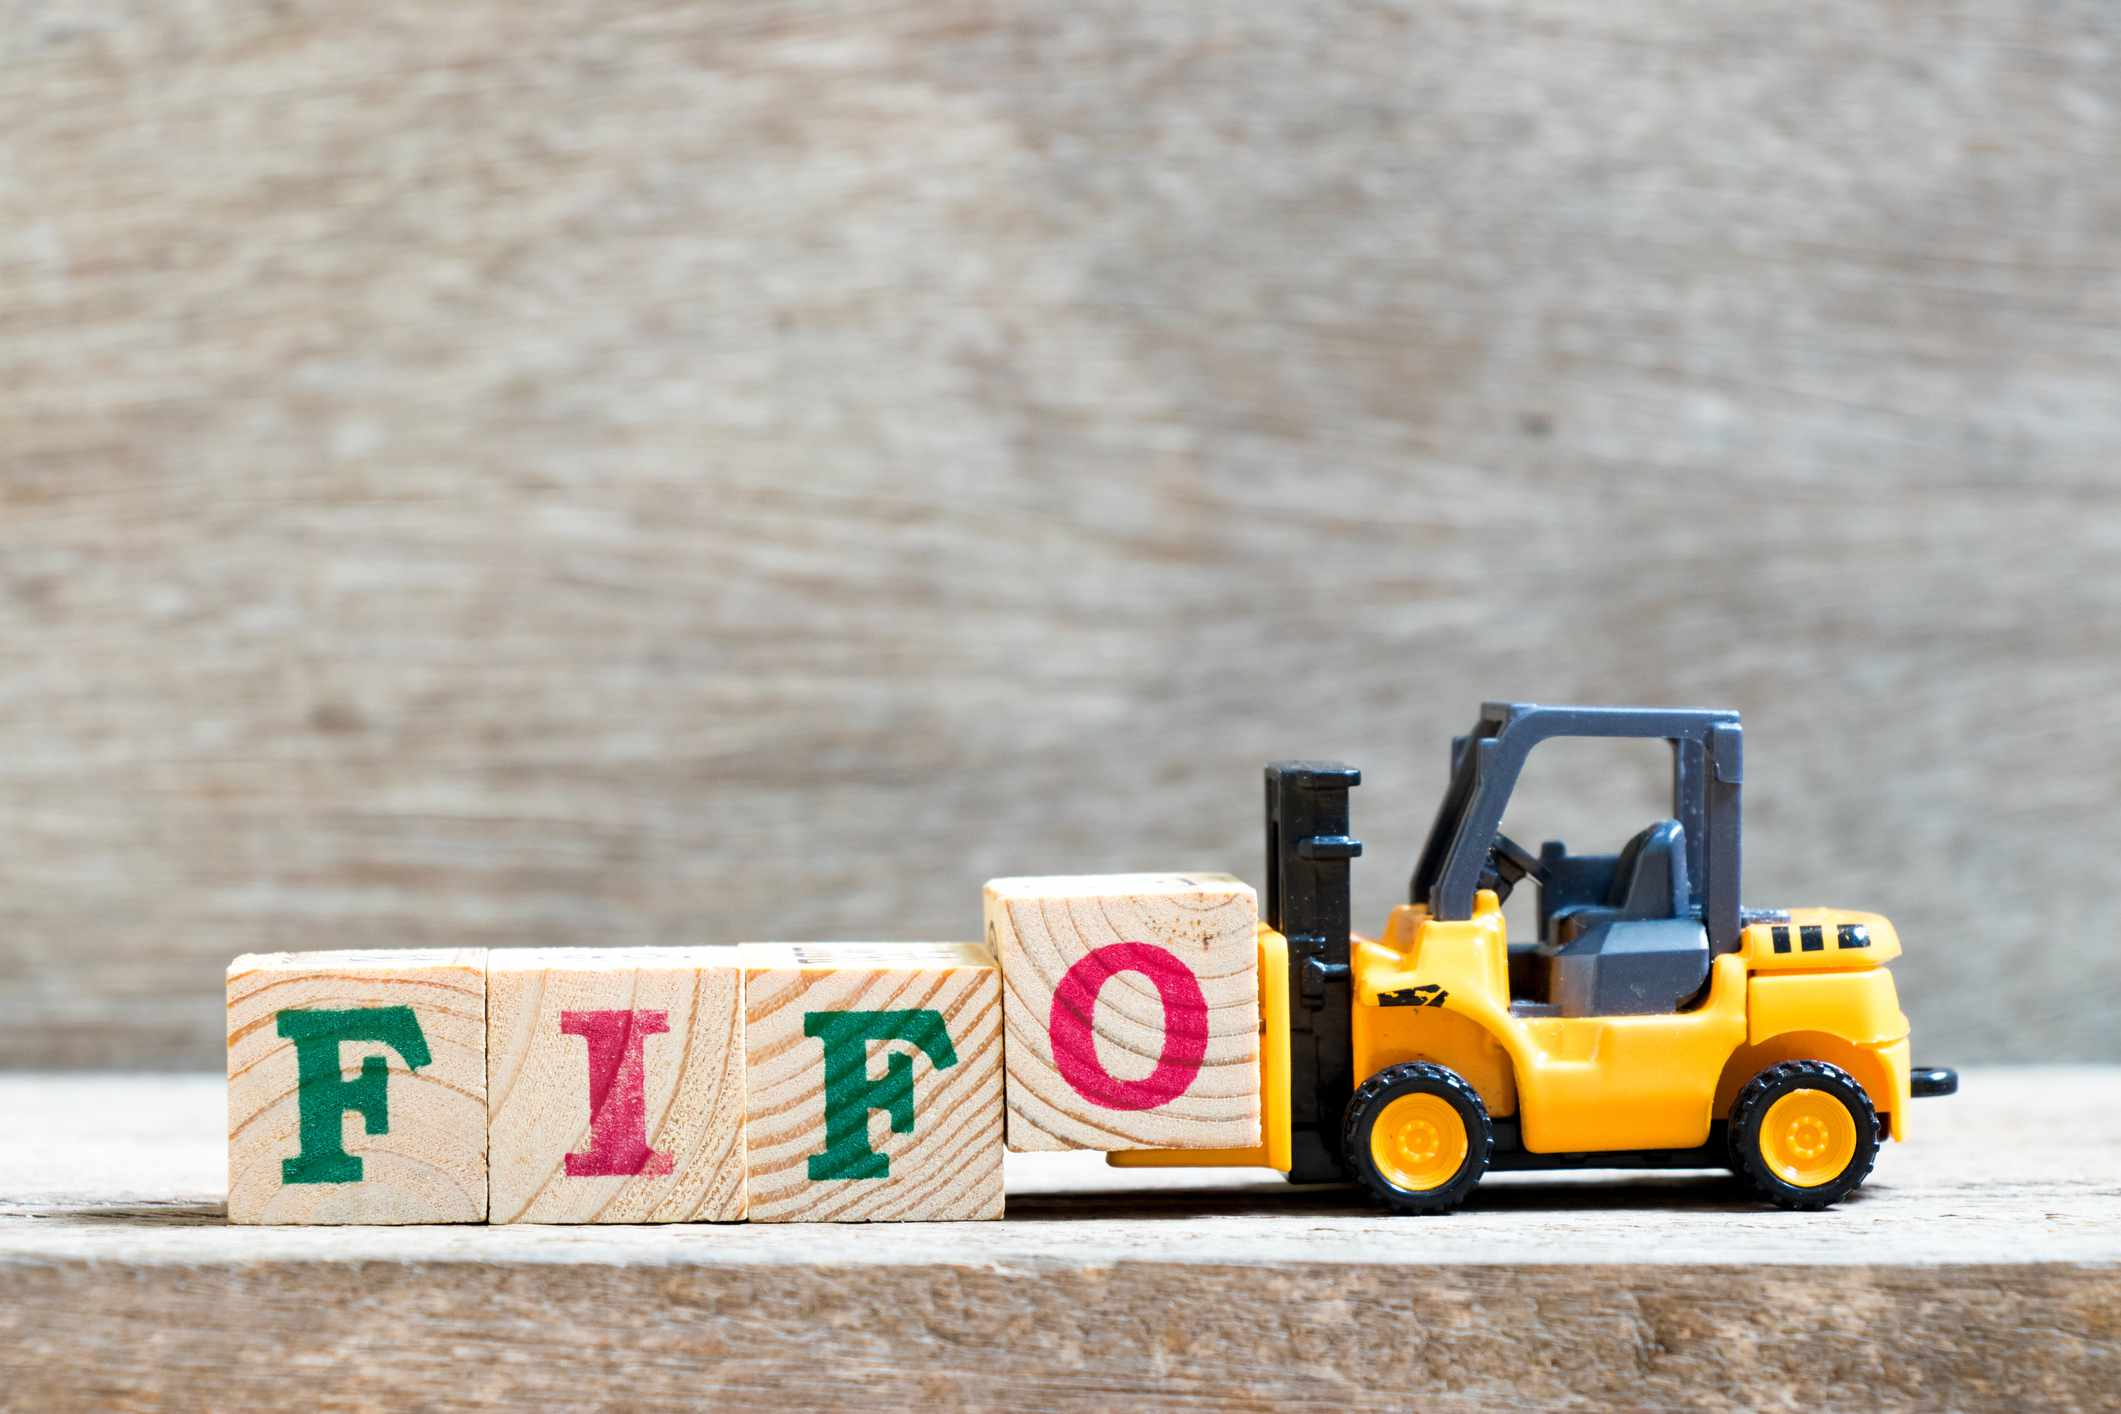 How to Calculate Cost of Goods Sold Using FIFO Method